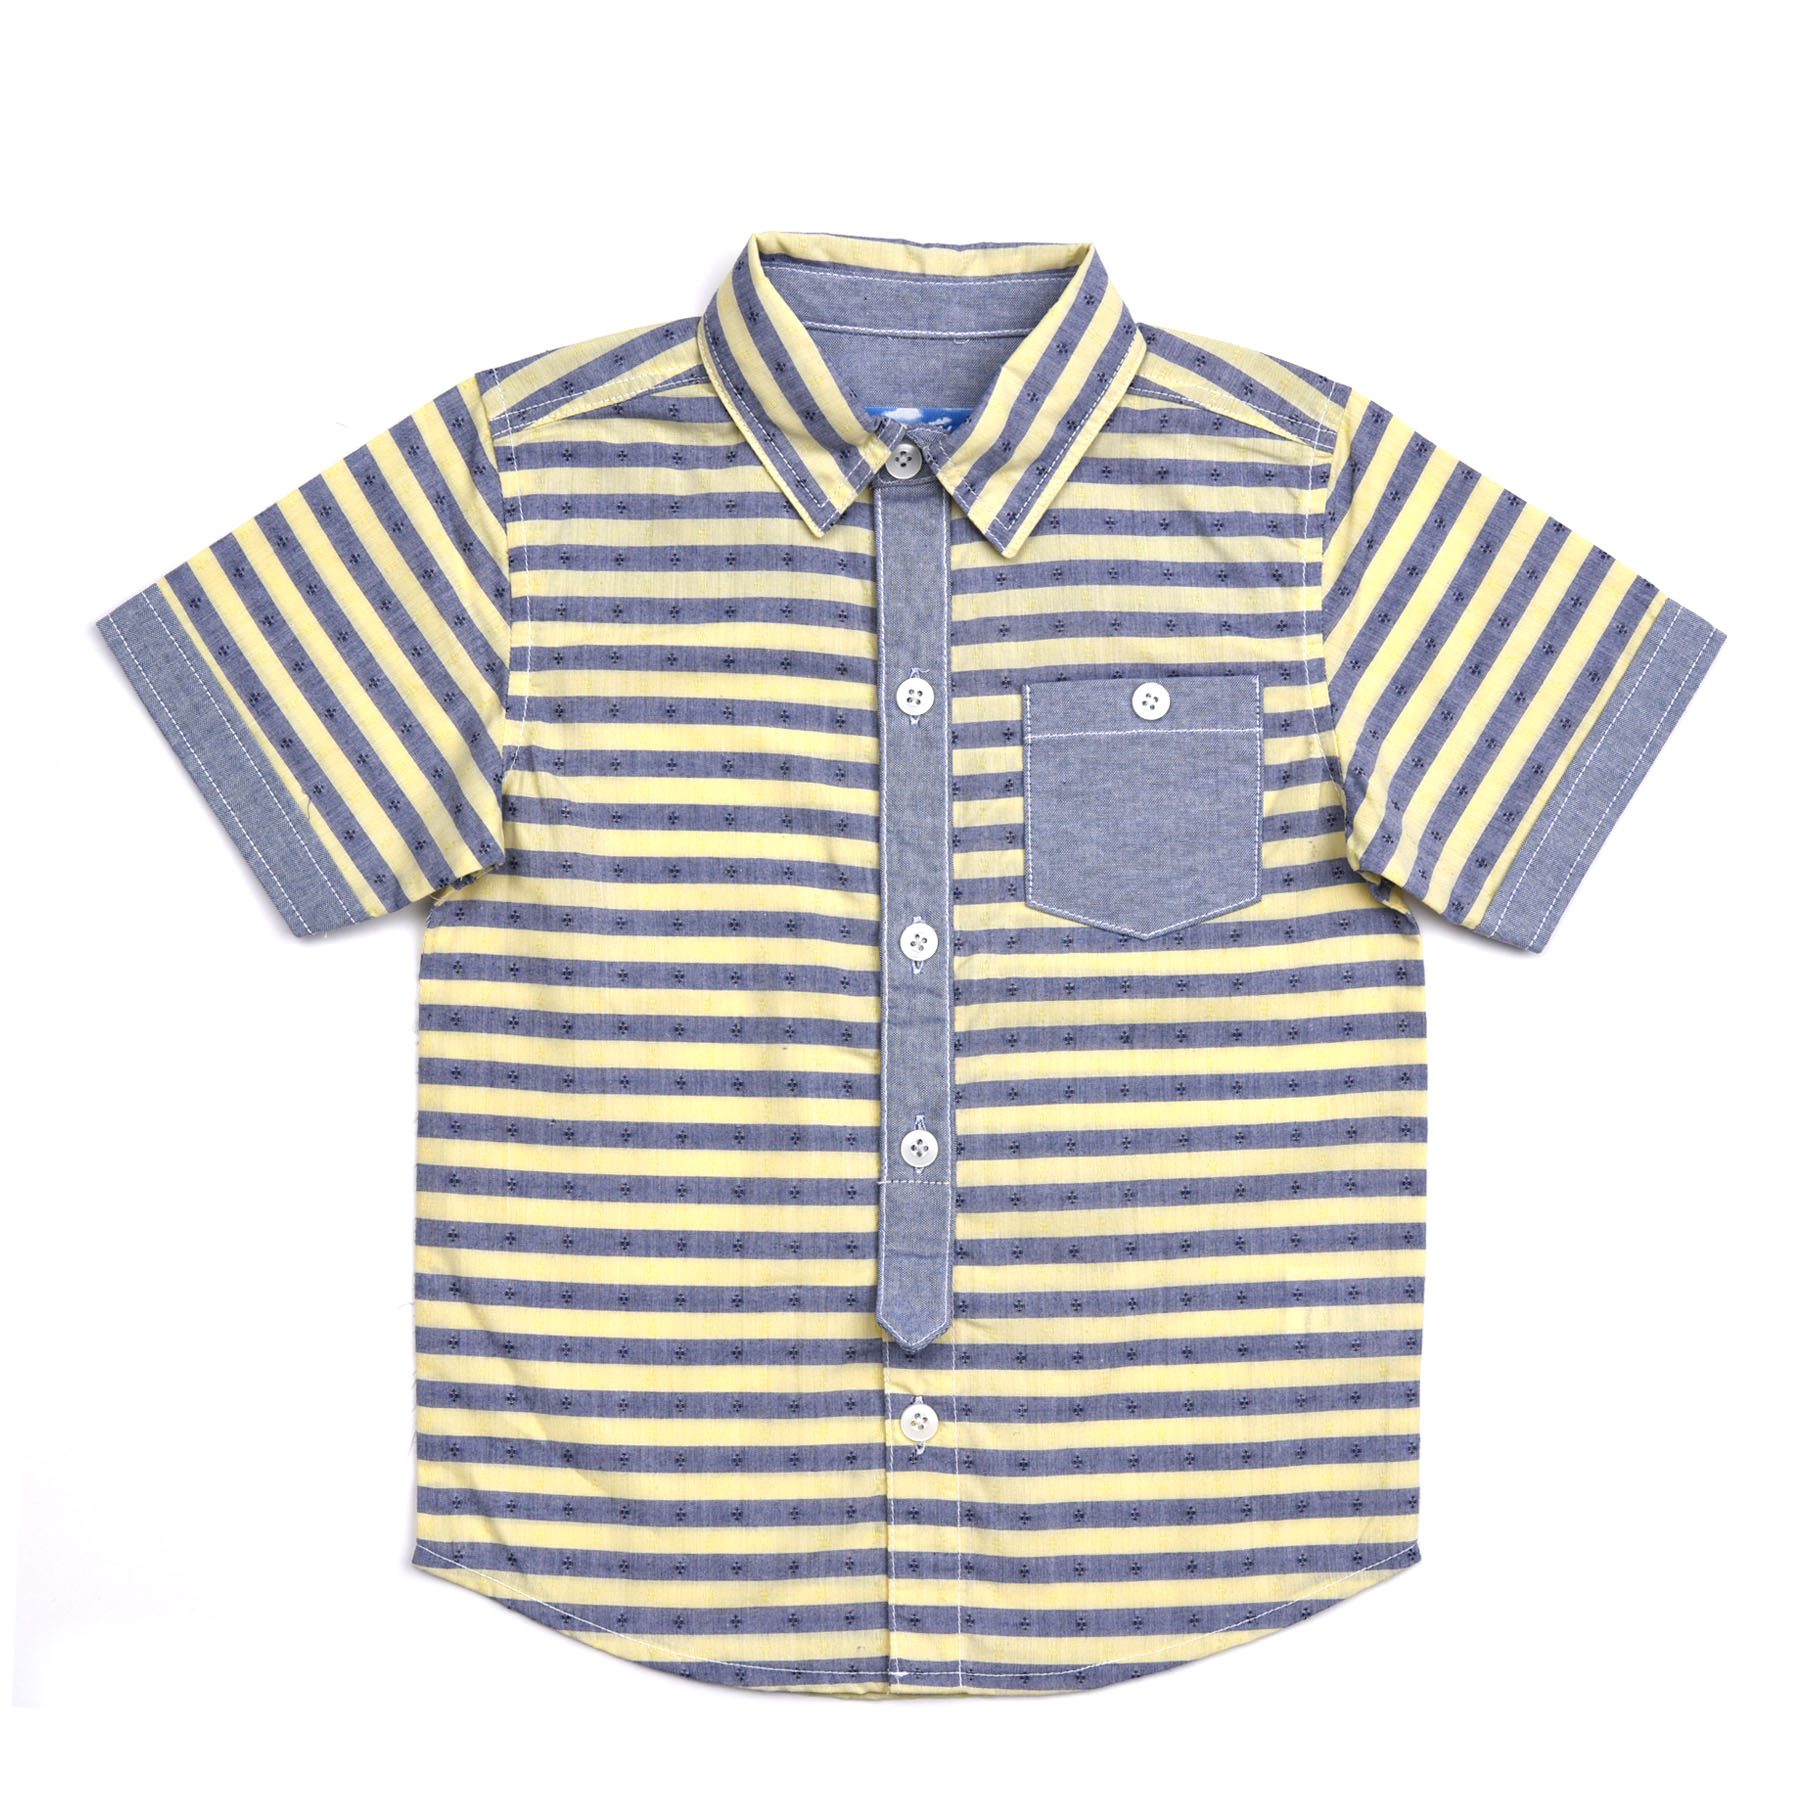 Kapital K Striped Chambray Button-up   Olive and Gray